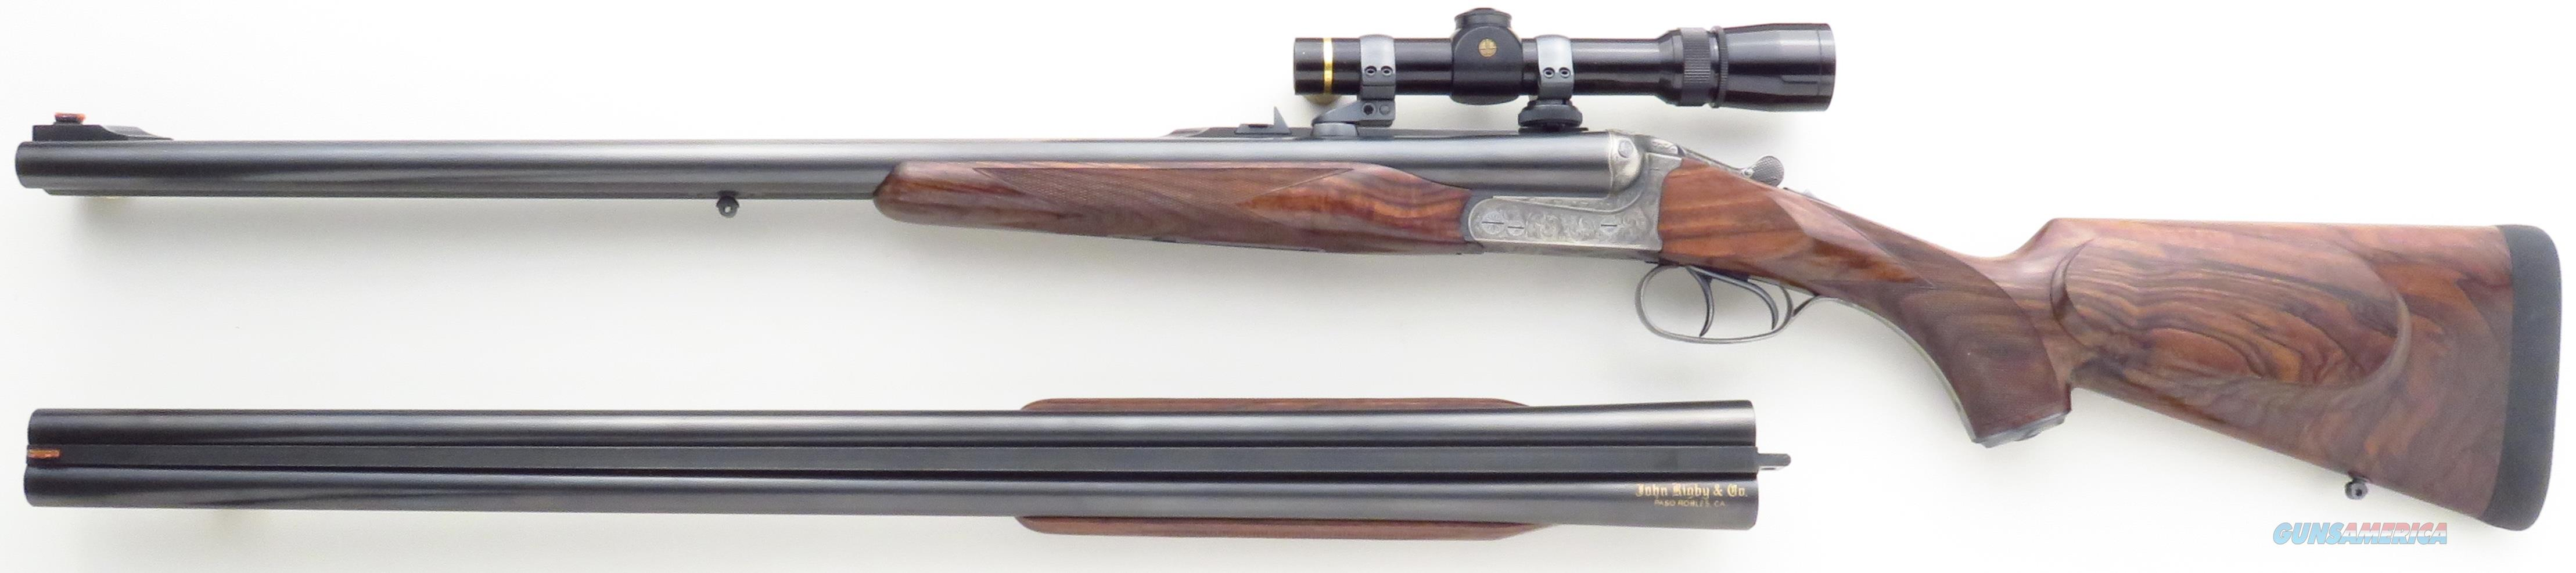 Rigby .470 Nitro Express, extra 12 gauge barrels, case, engraved, EAA quick detach, scope, case, mint condition  Guns > Rifles > Double Rifles (Misc.)